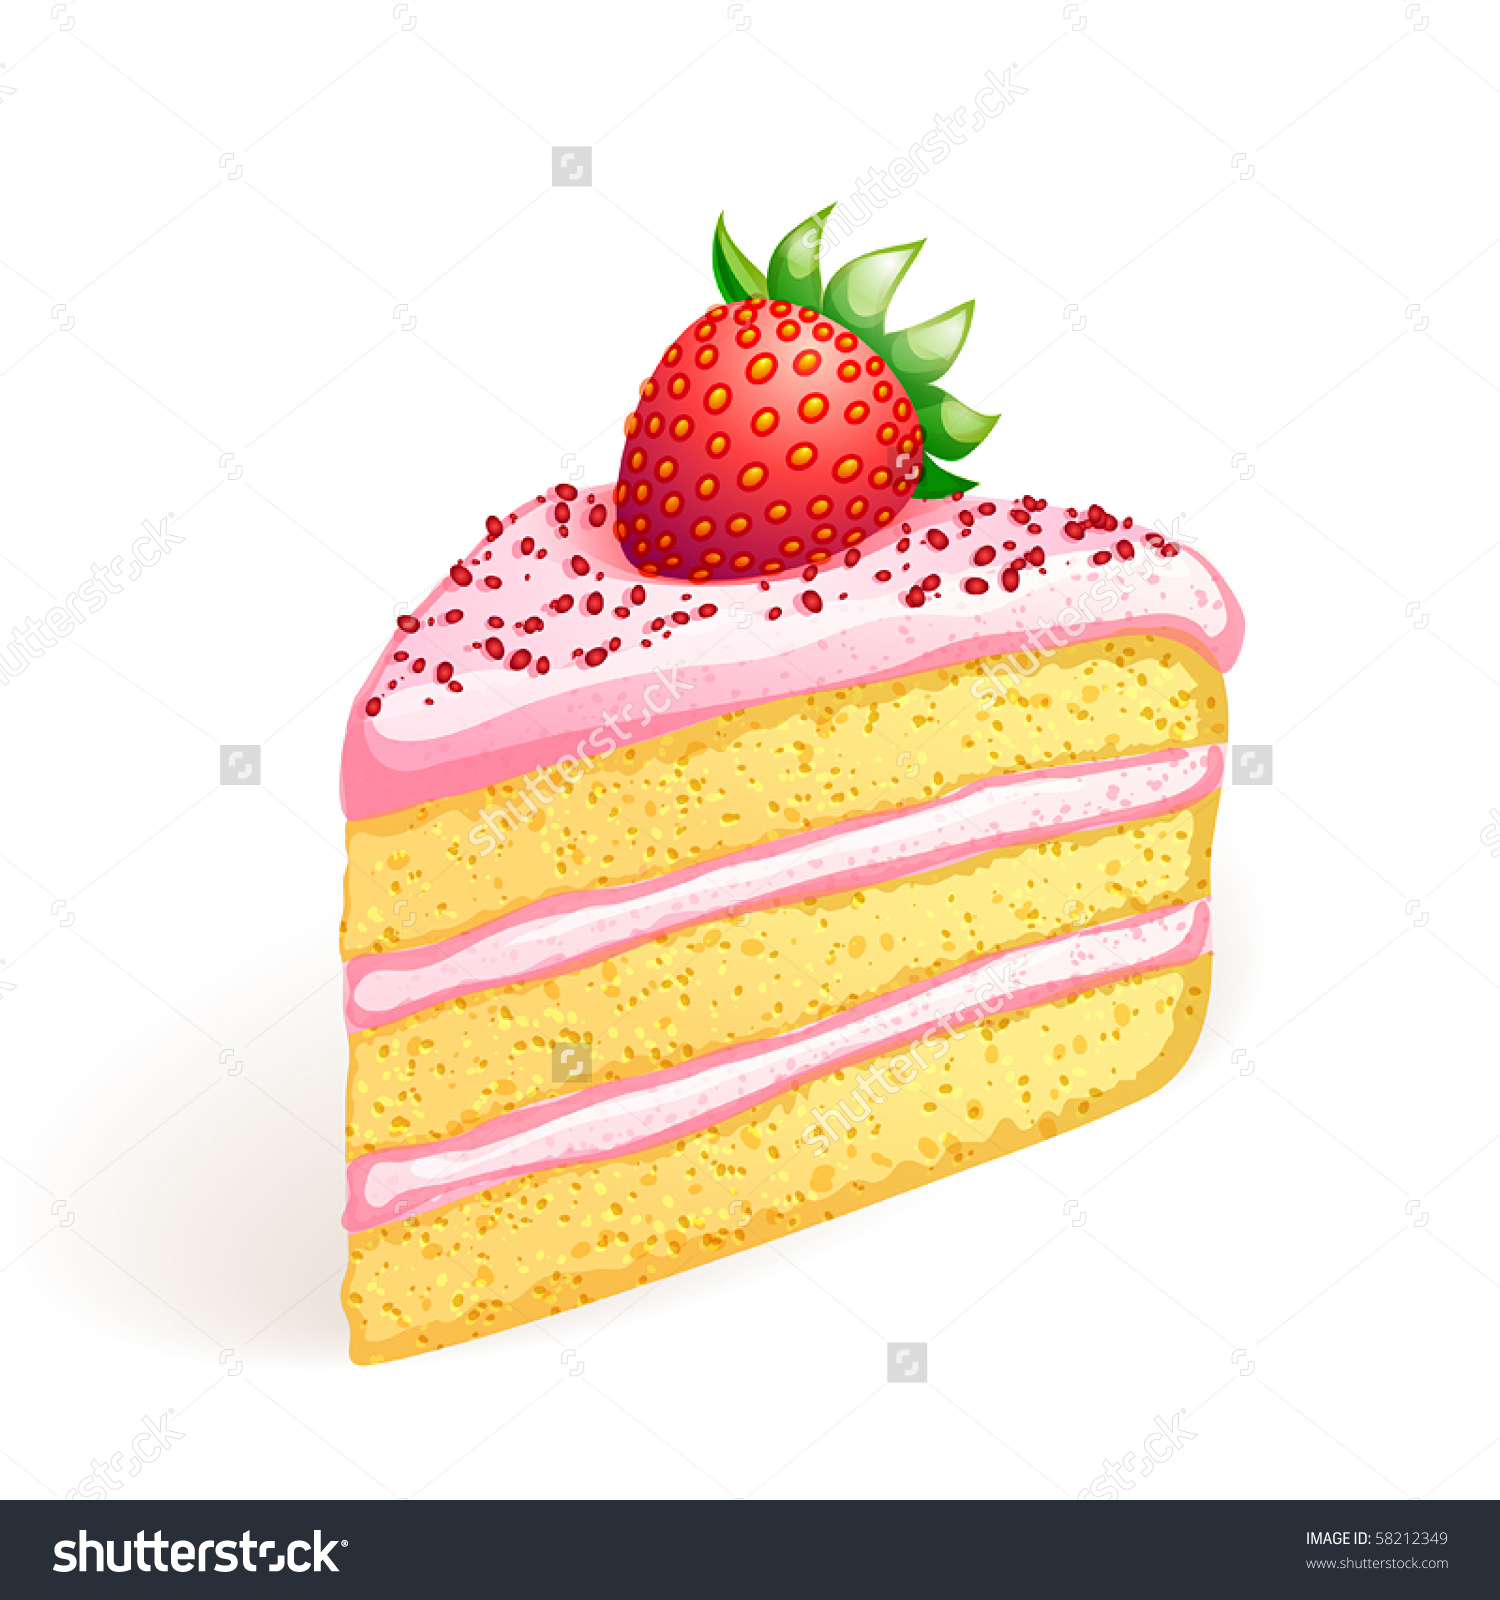 piece of clipartlook. Clipart cake cake slice